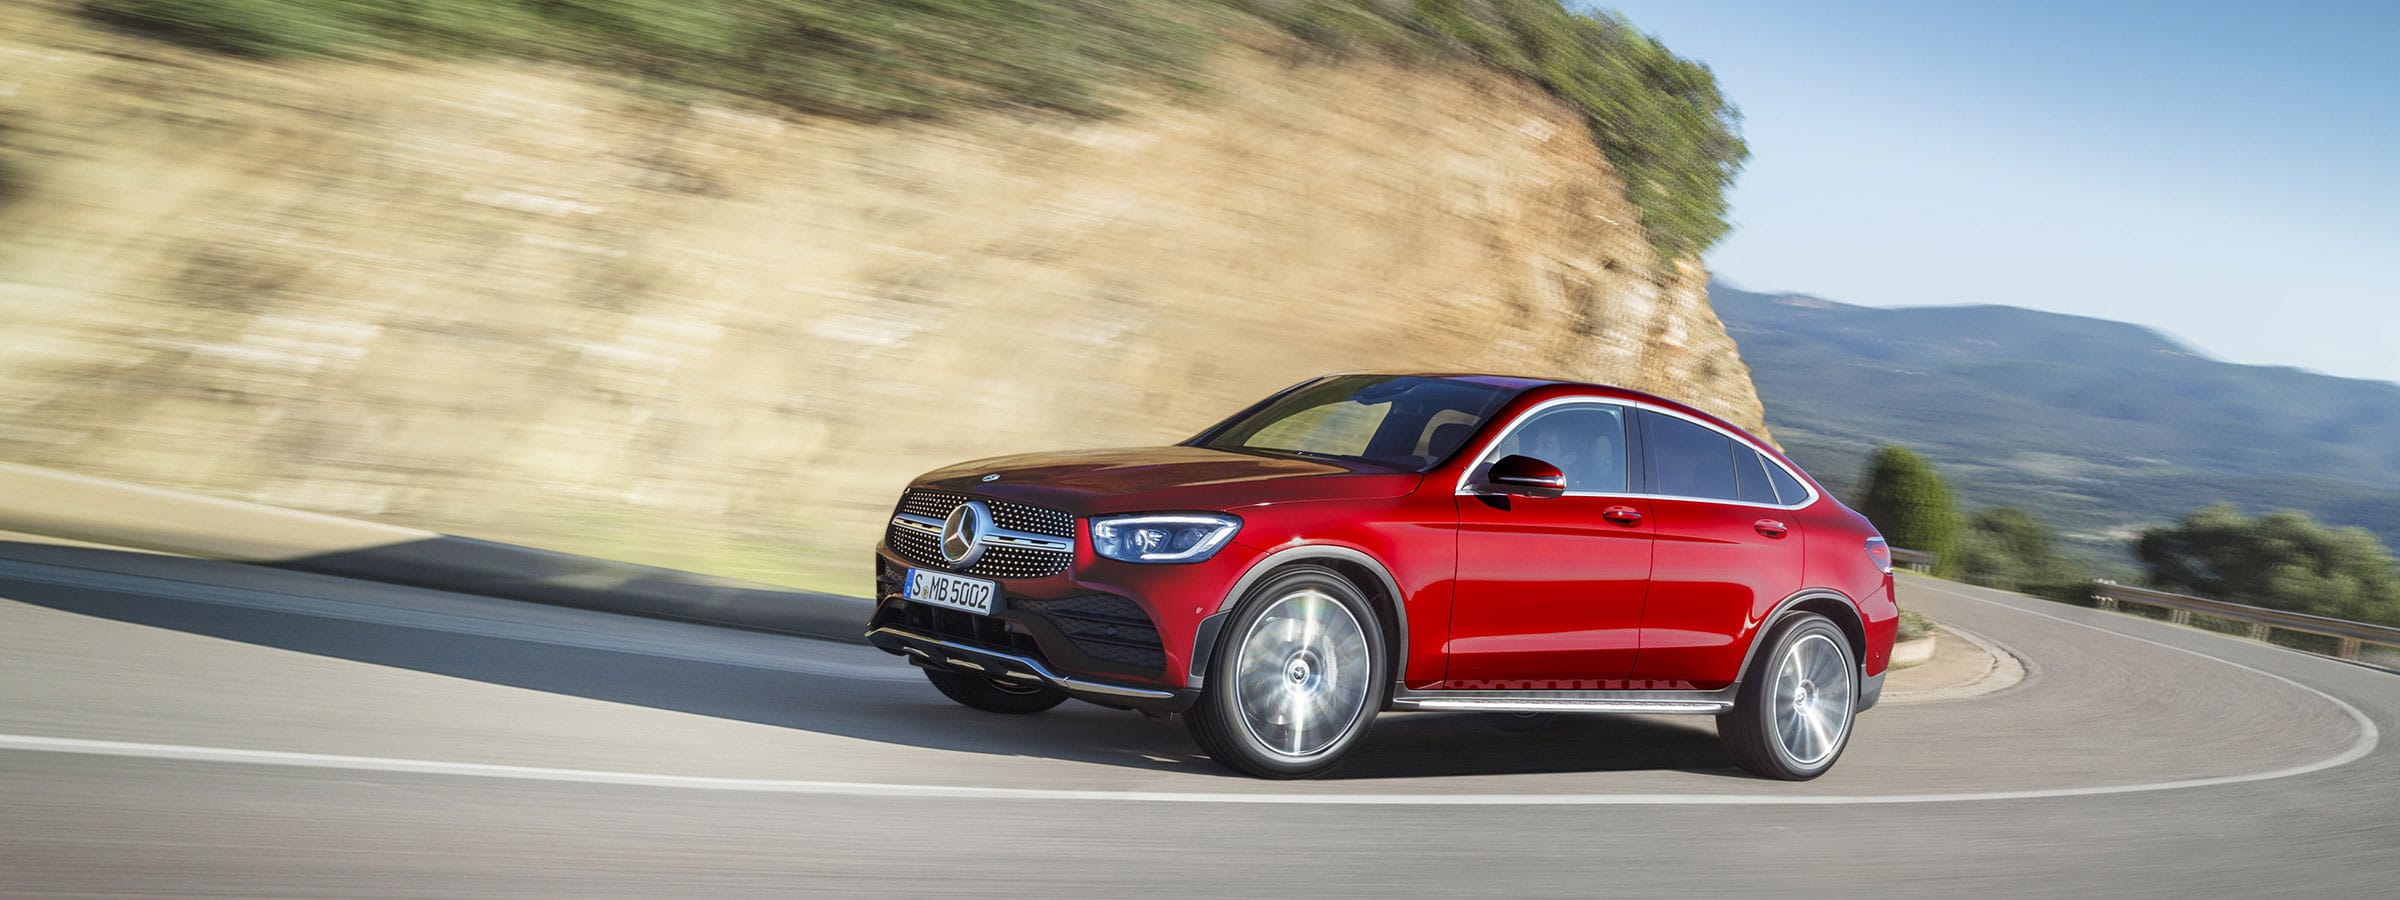 2020 Glc Coupe Future Vehicles Mercedes Benz Usa